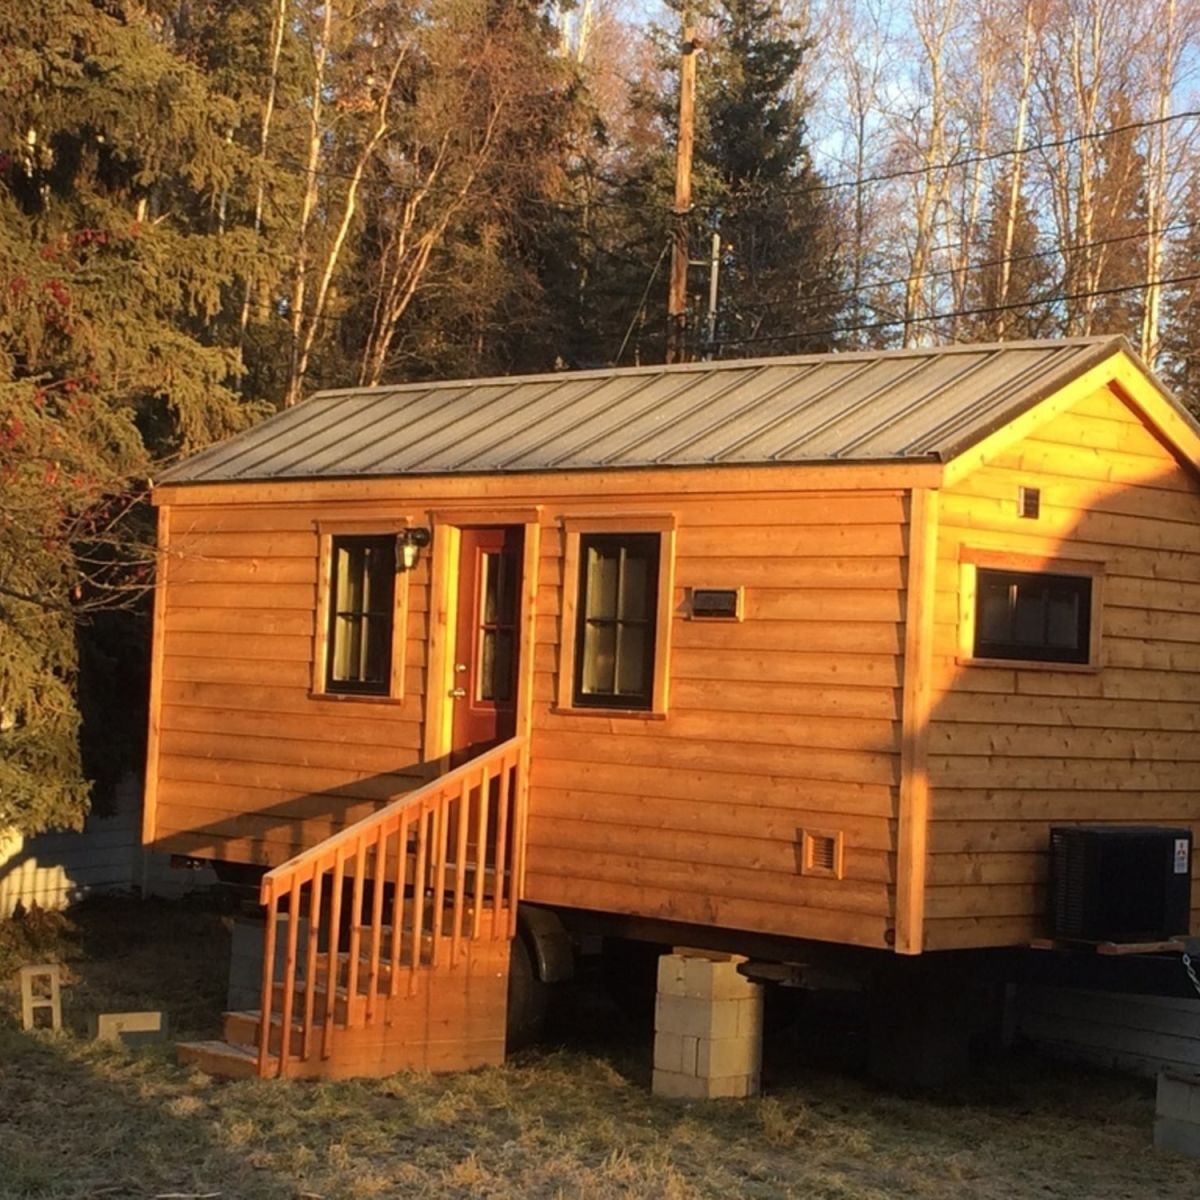 Used Tumbleweed Tiny House for Sale - Tiny House for Sale in Anchorage,  Alaska - Tiny House Listings